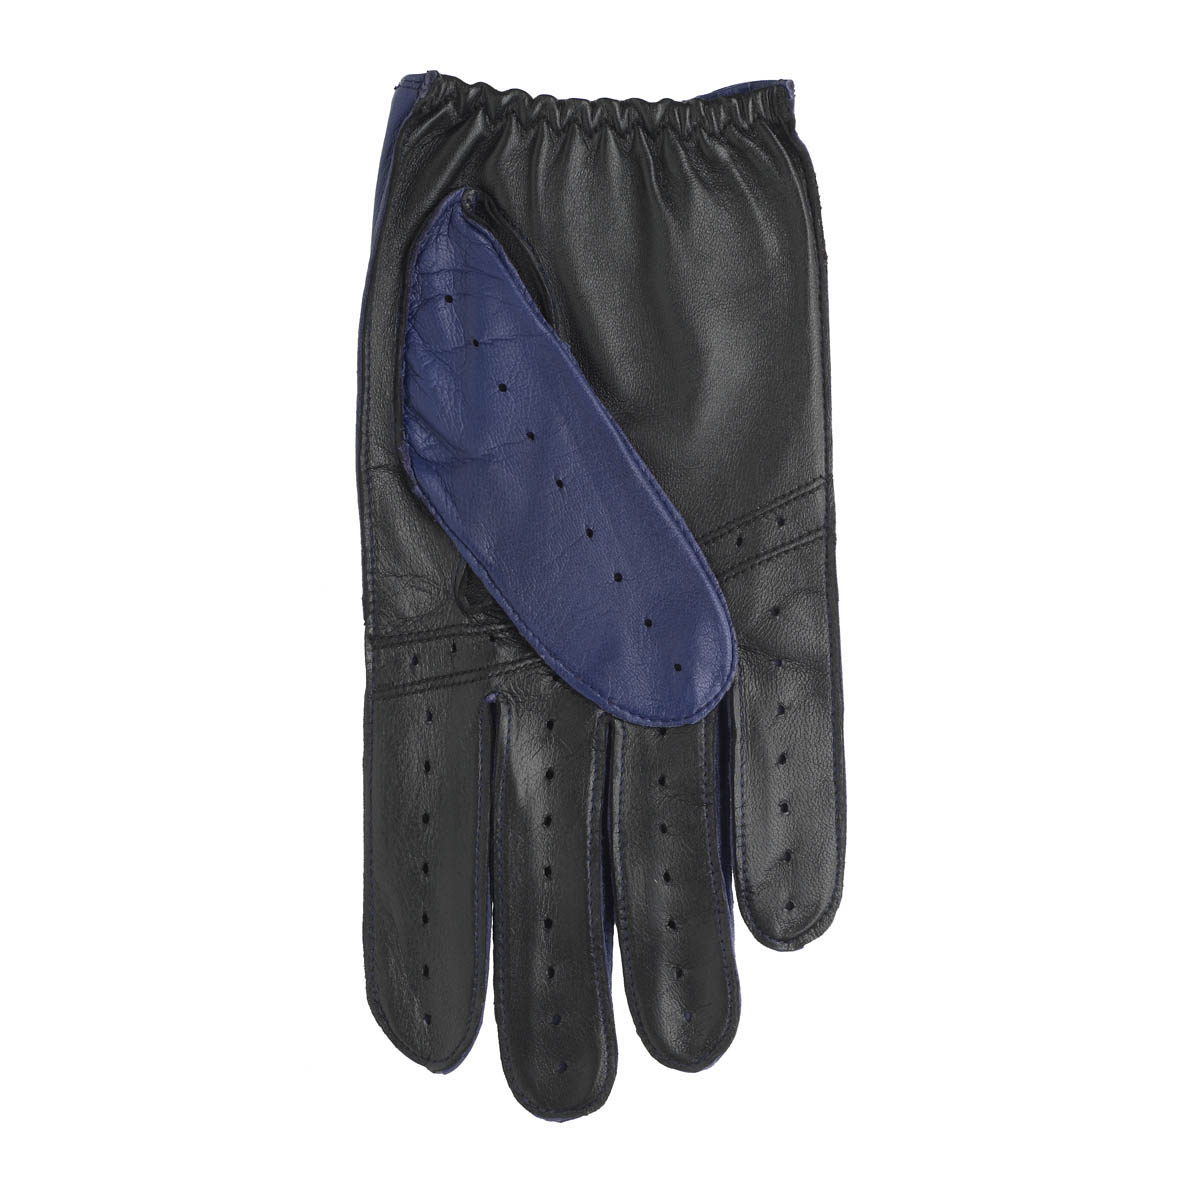 Blue leather driving gloves - Dents Leather Driving Gloves 5 1021 Royal Blue